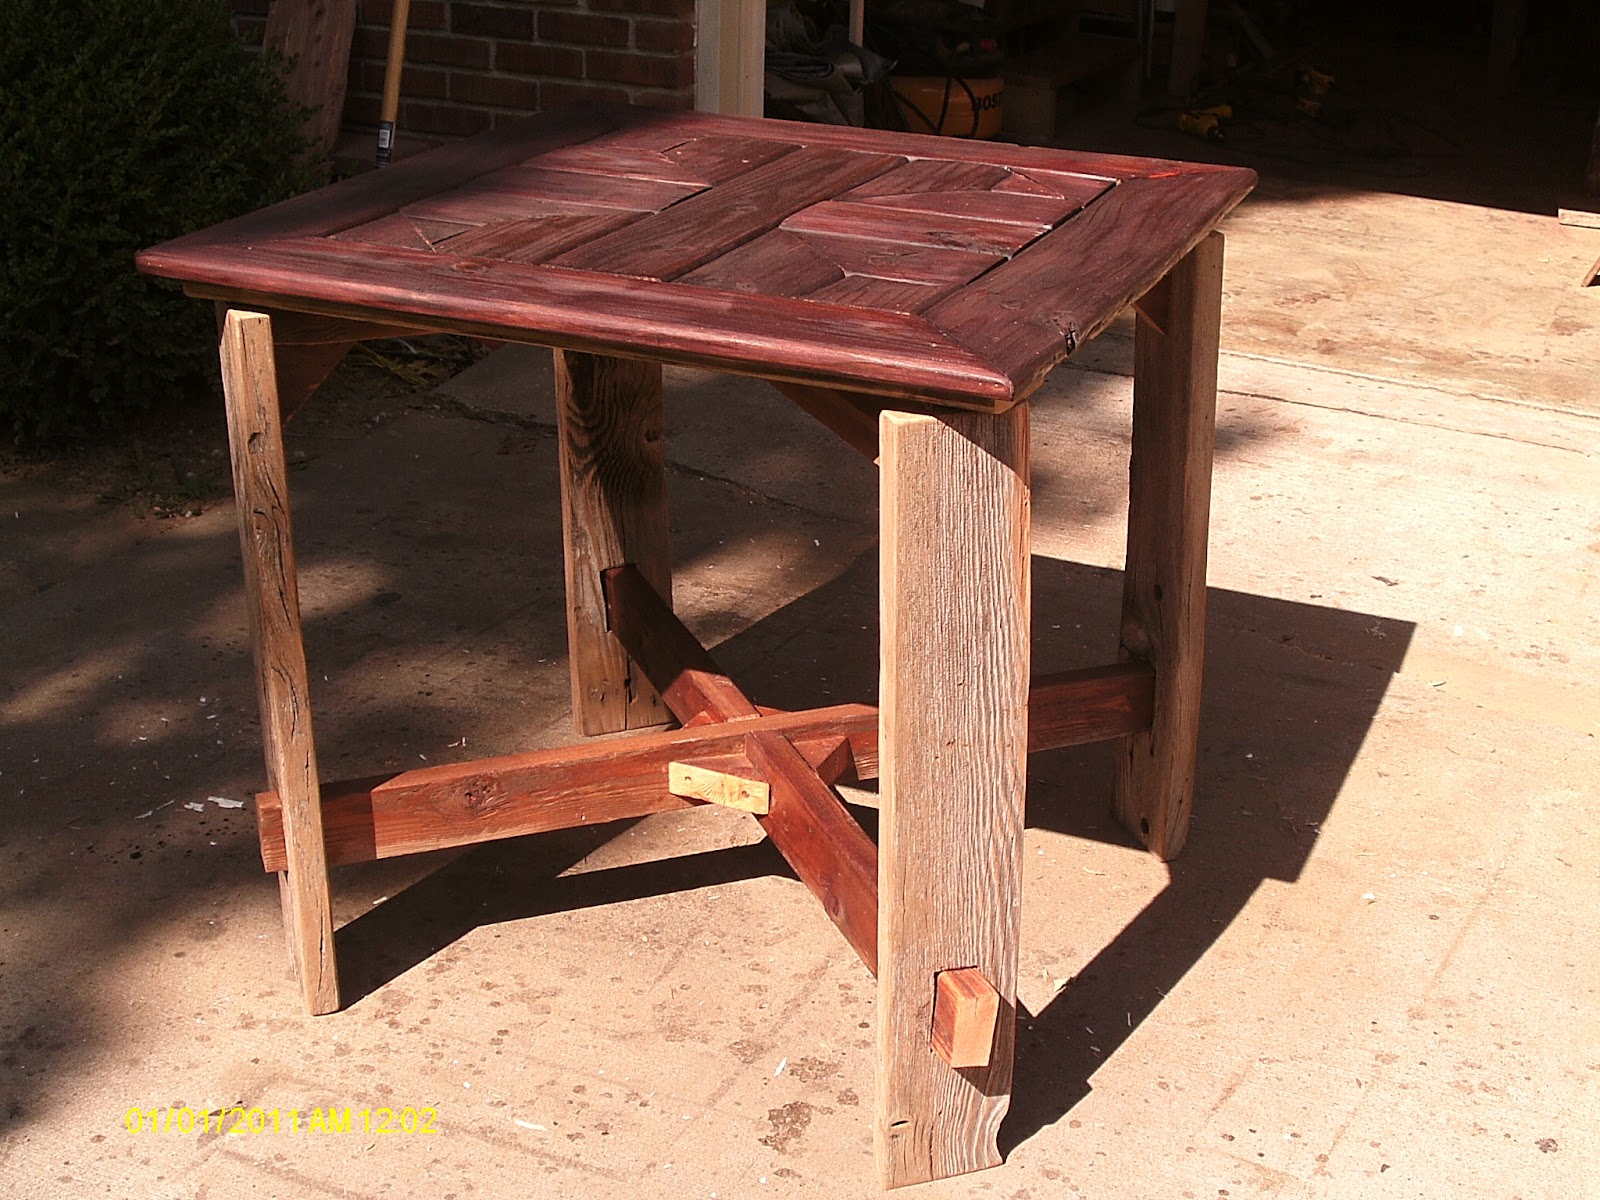 I Used Over 100 Year Old Barnwood Boards For The 4 Legs, Reclaimed 2 X 4u0027s  From A Fence For The Cross Beams On The ...